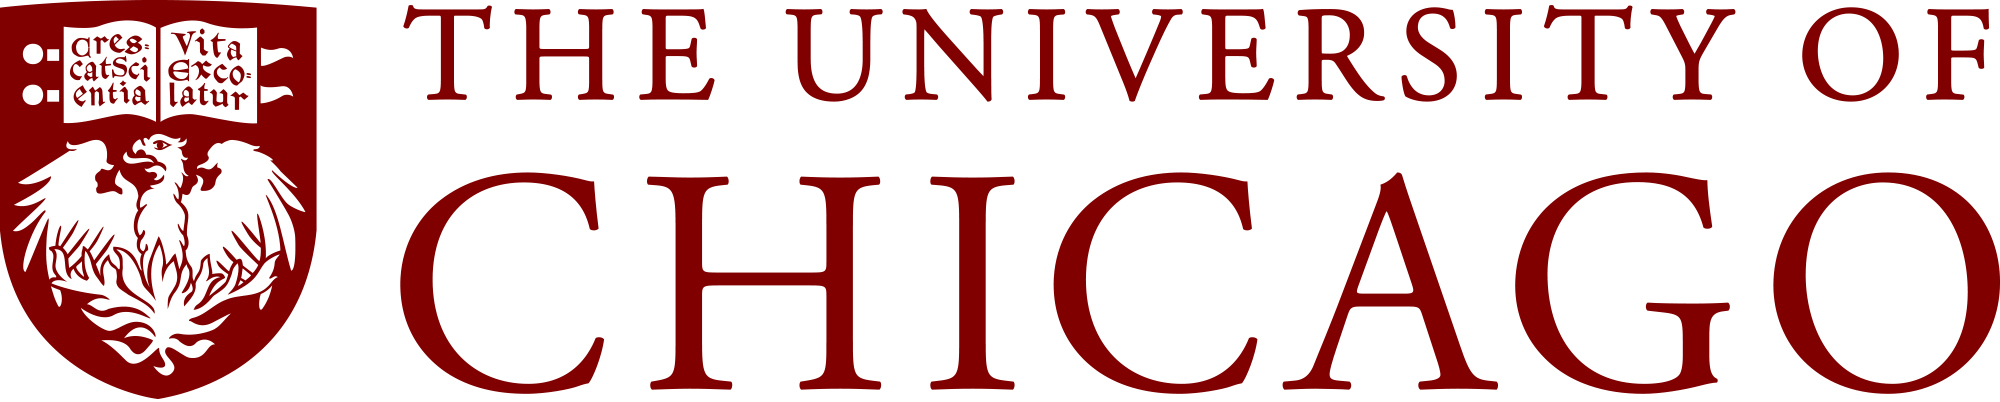 The University of Chicago Student Dental